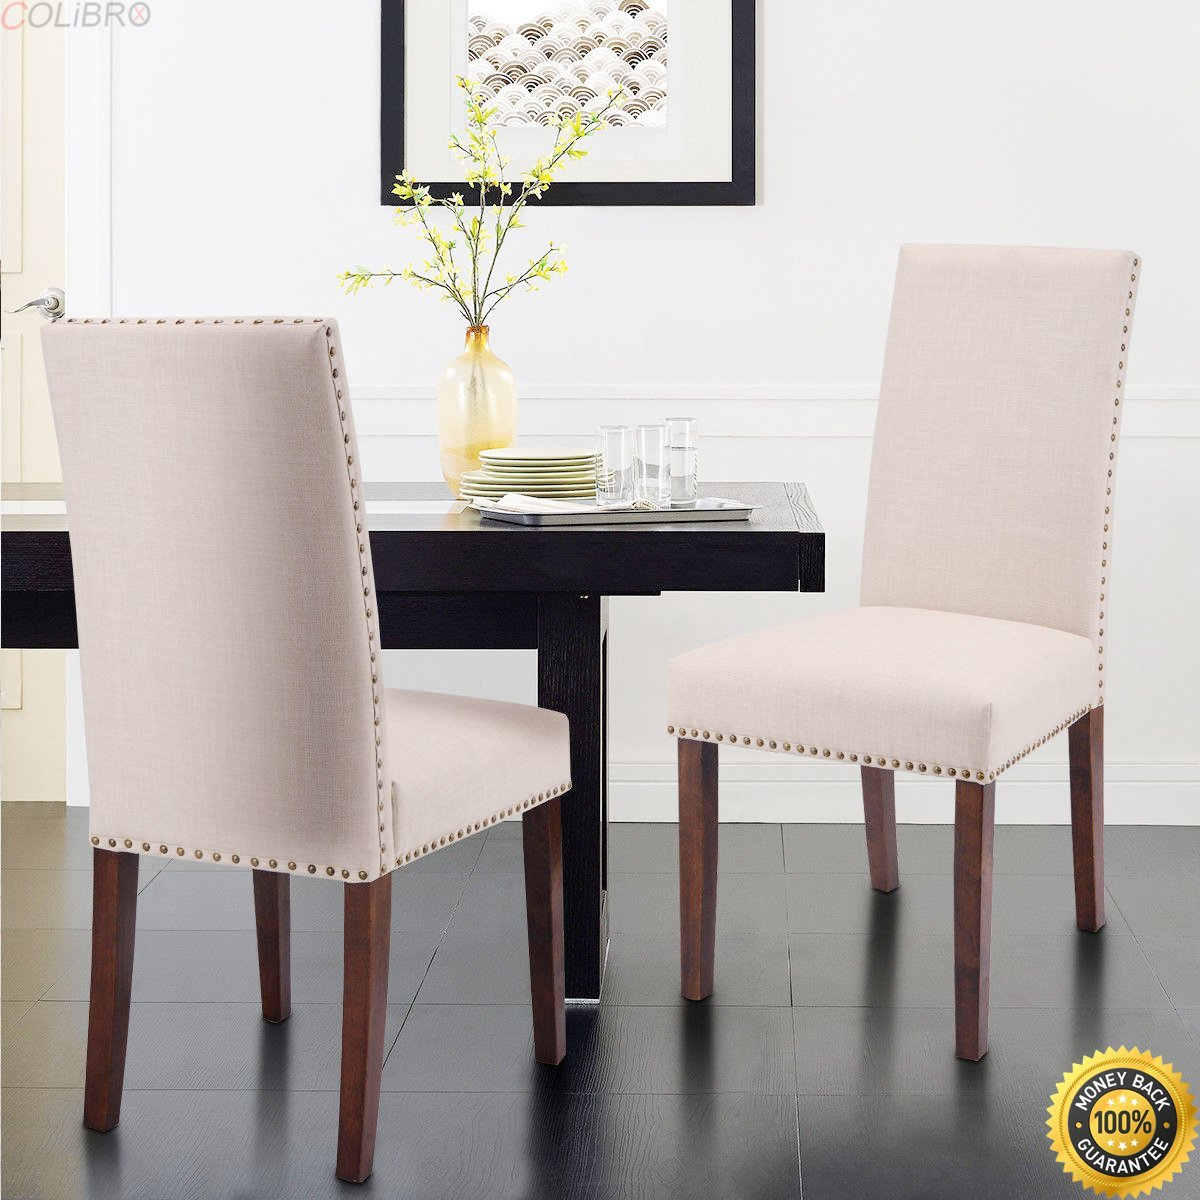 Buy Colibrox Set Of 4 Fabric Cushion Seat Accent Arm Chair Dining Chair Metal Leg Living Room Side Dining Chair Upholstered Dining Chairs Set Of 4 Living Room Accent Chairs Amazon Dining Room Chairs In Cheap